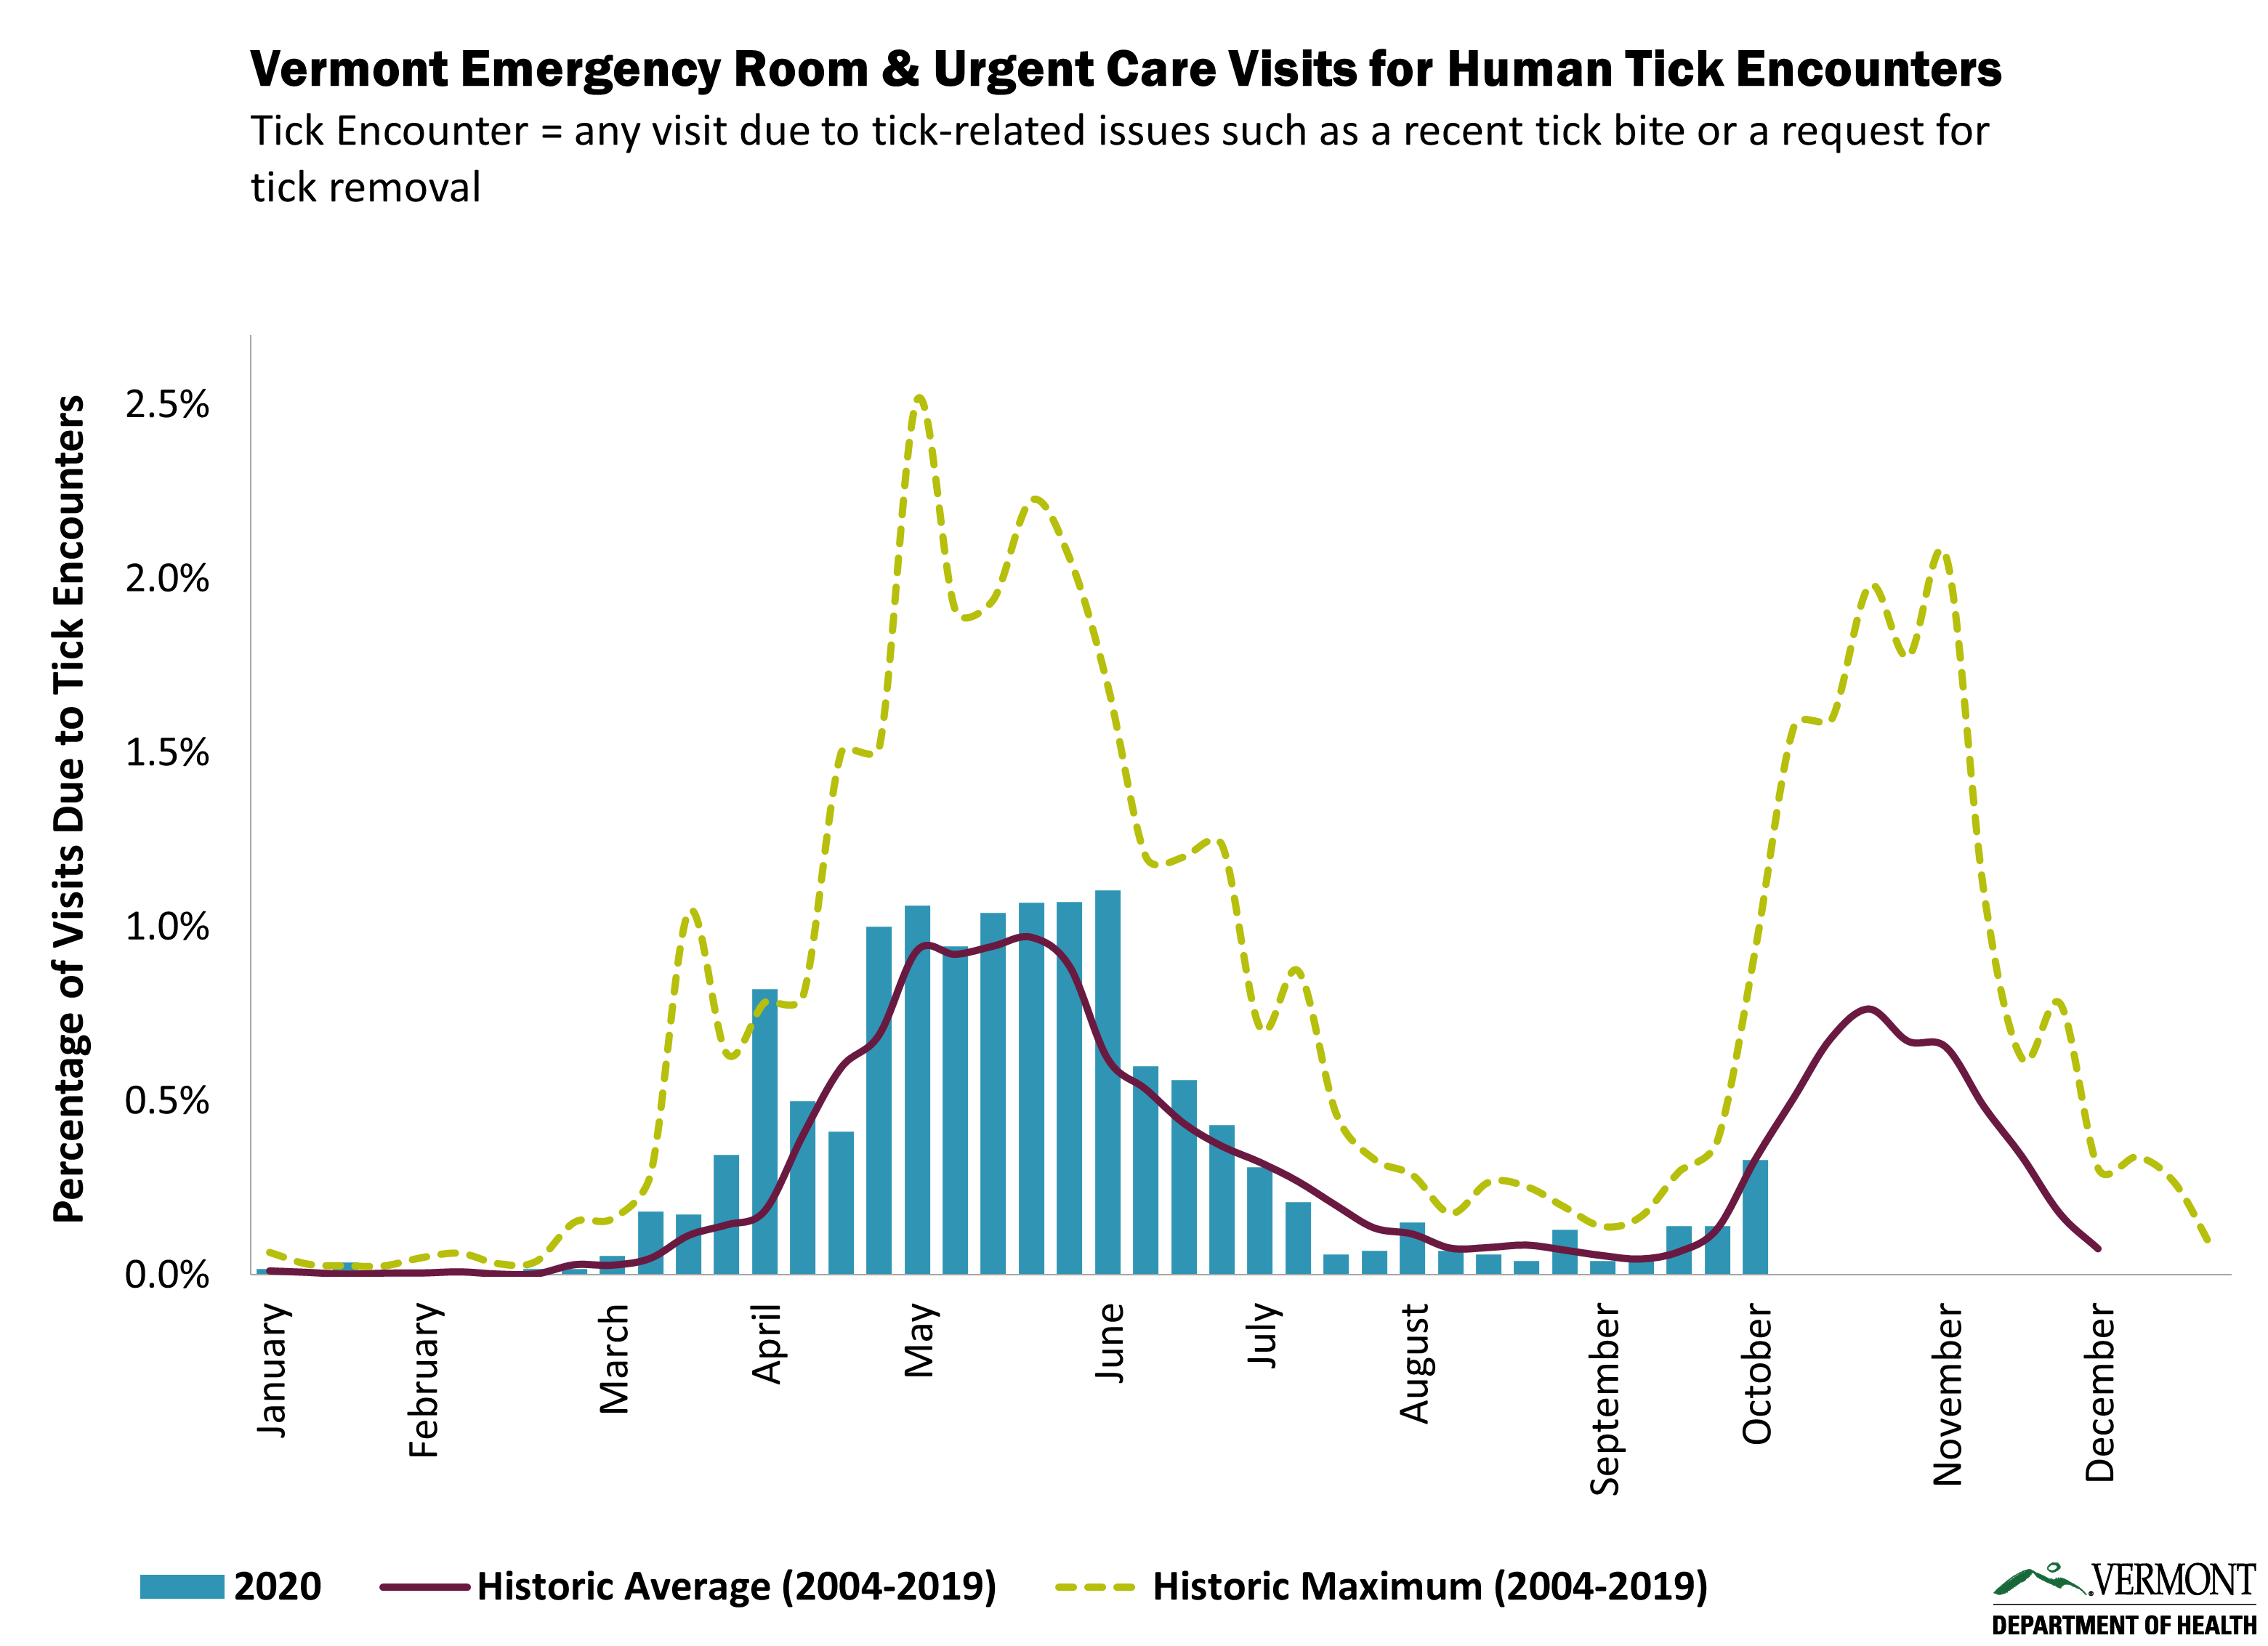 Graph of emergency room and urgent care visits for human tick encounters in Vermont